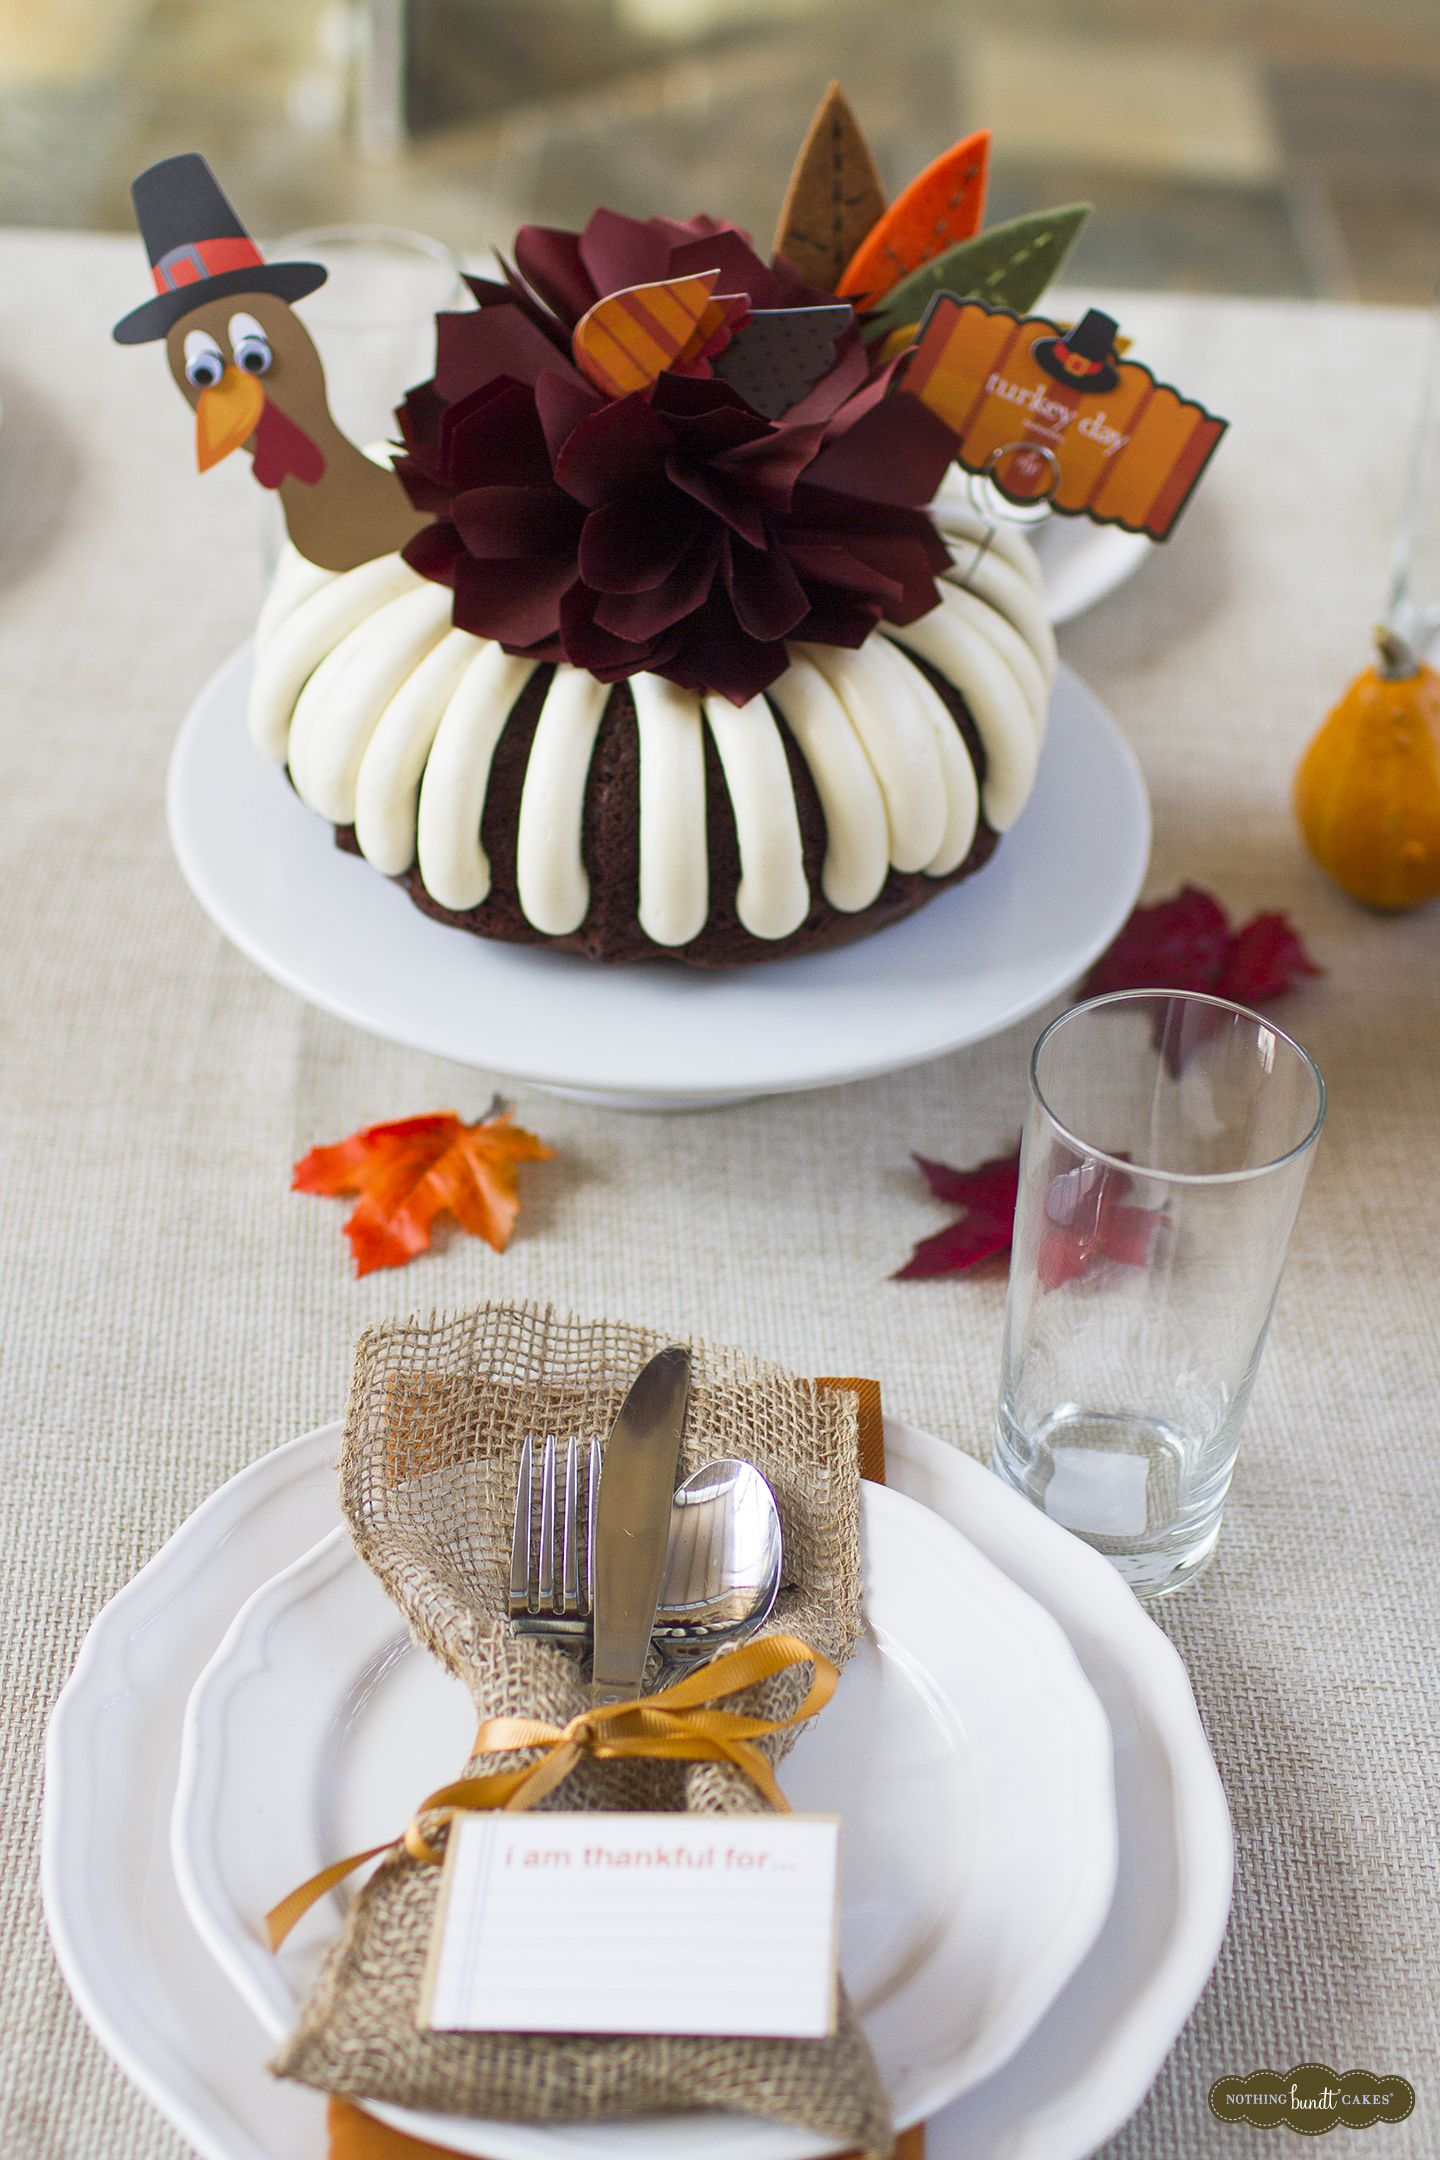 A Turkey Day Bundt Cake Is Perfect For Thanksgiving With